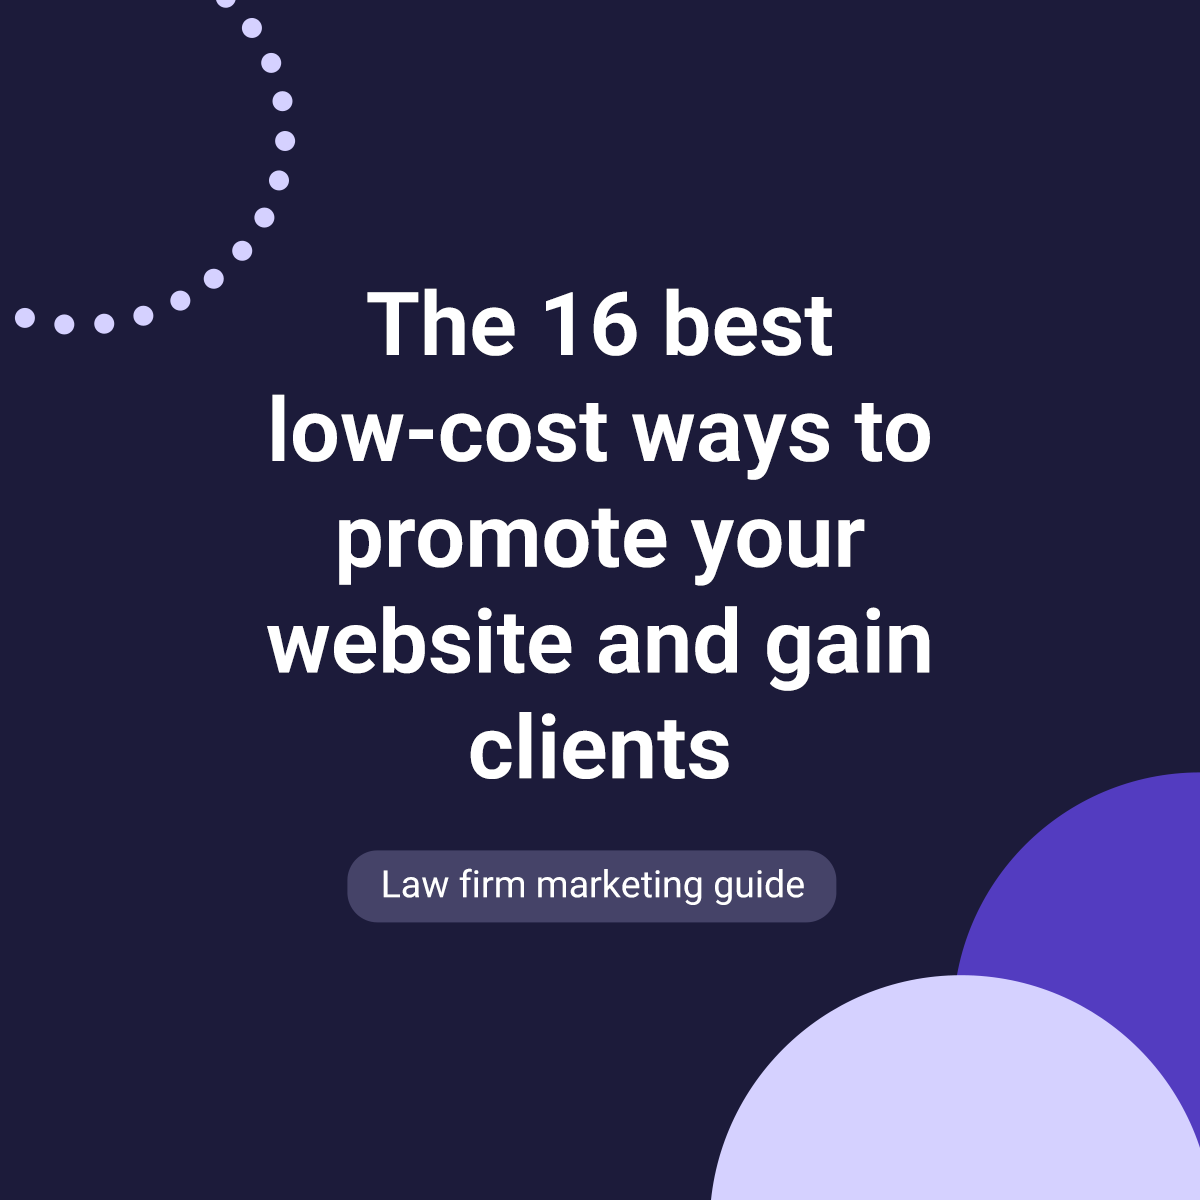 The 16 best low-cost ways to promote your website and gain clients